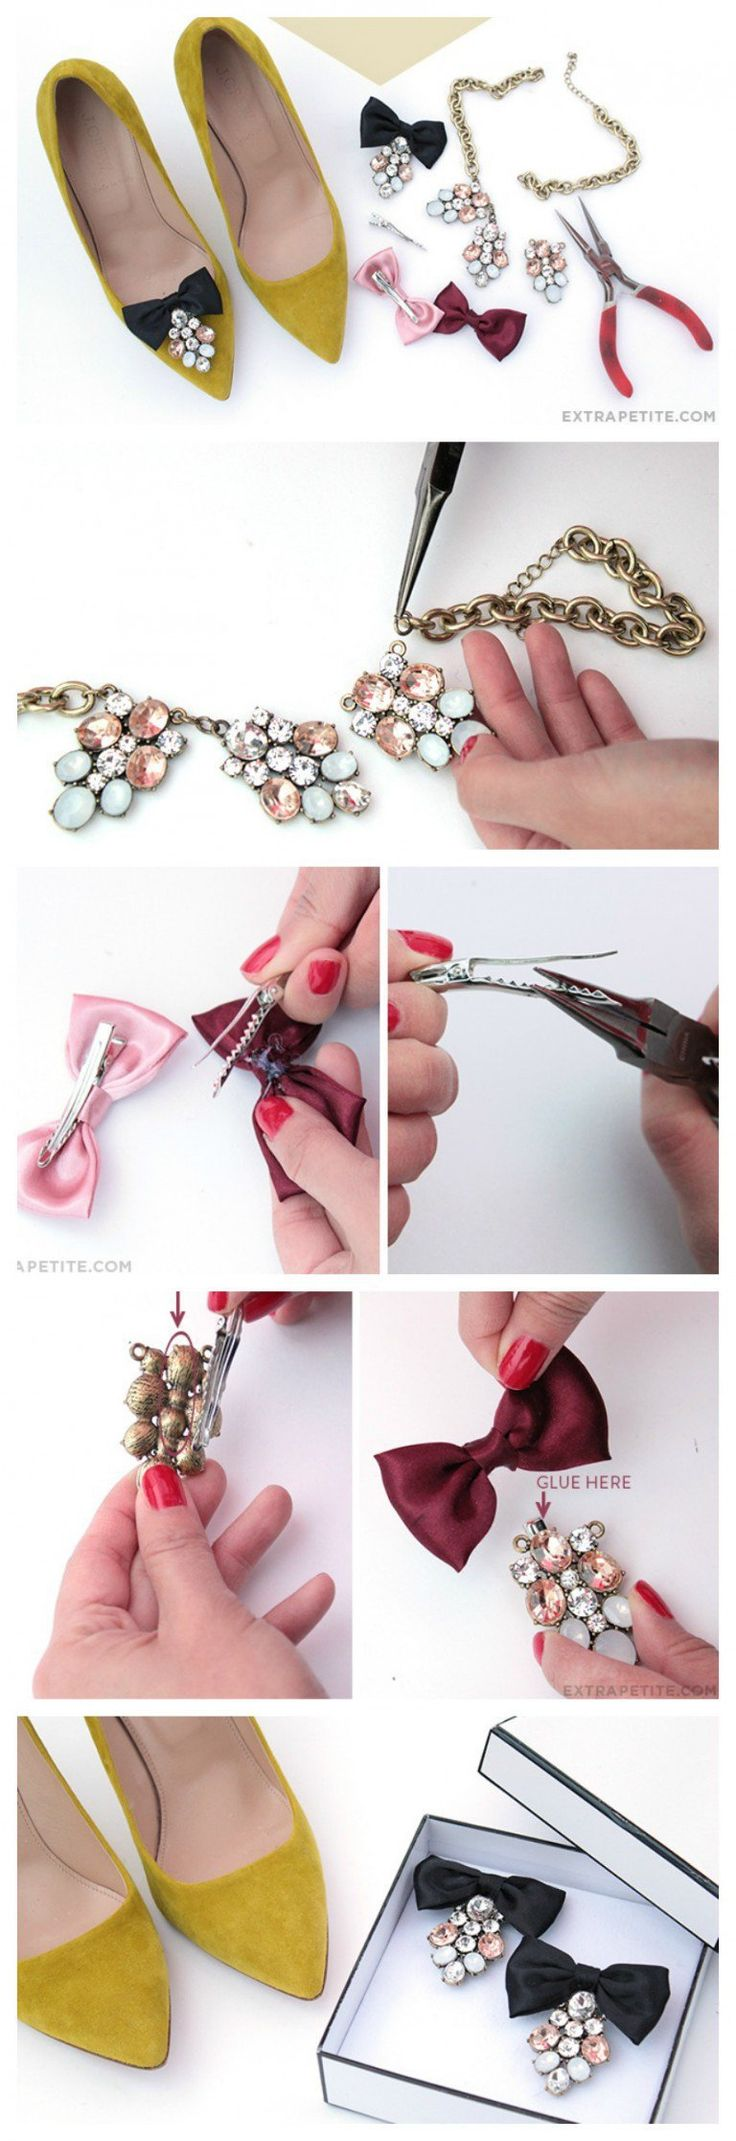 DIY Shoe Clip Ideas are the simple and stylish clips that you can made by your hand easily for your footwear customization.